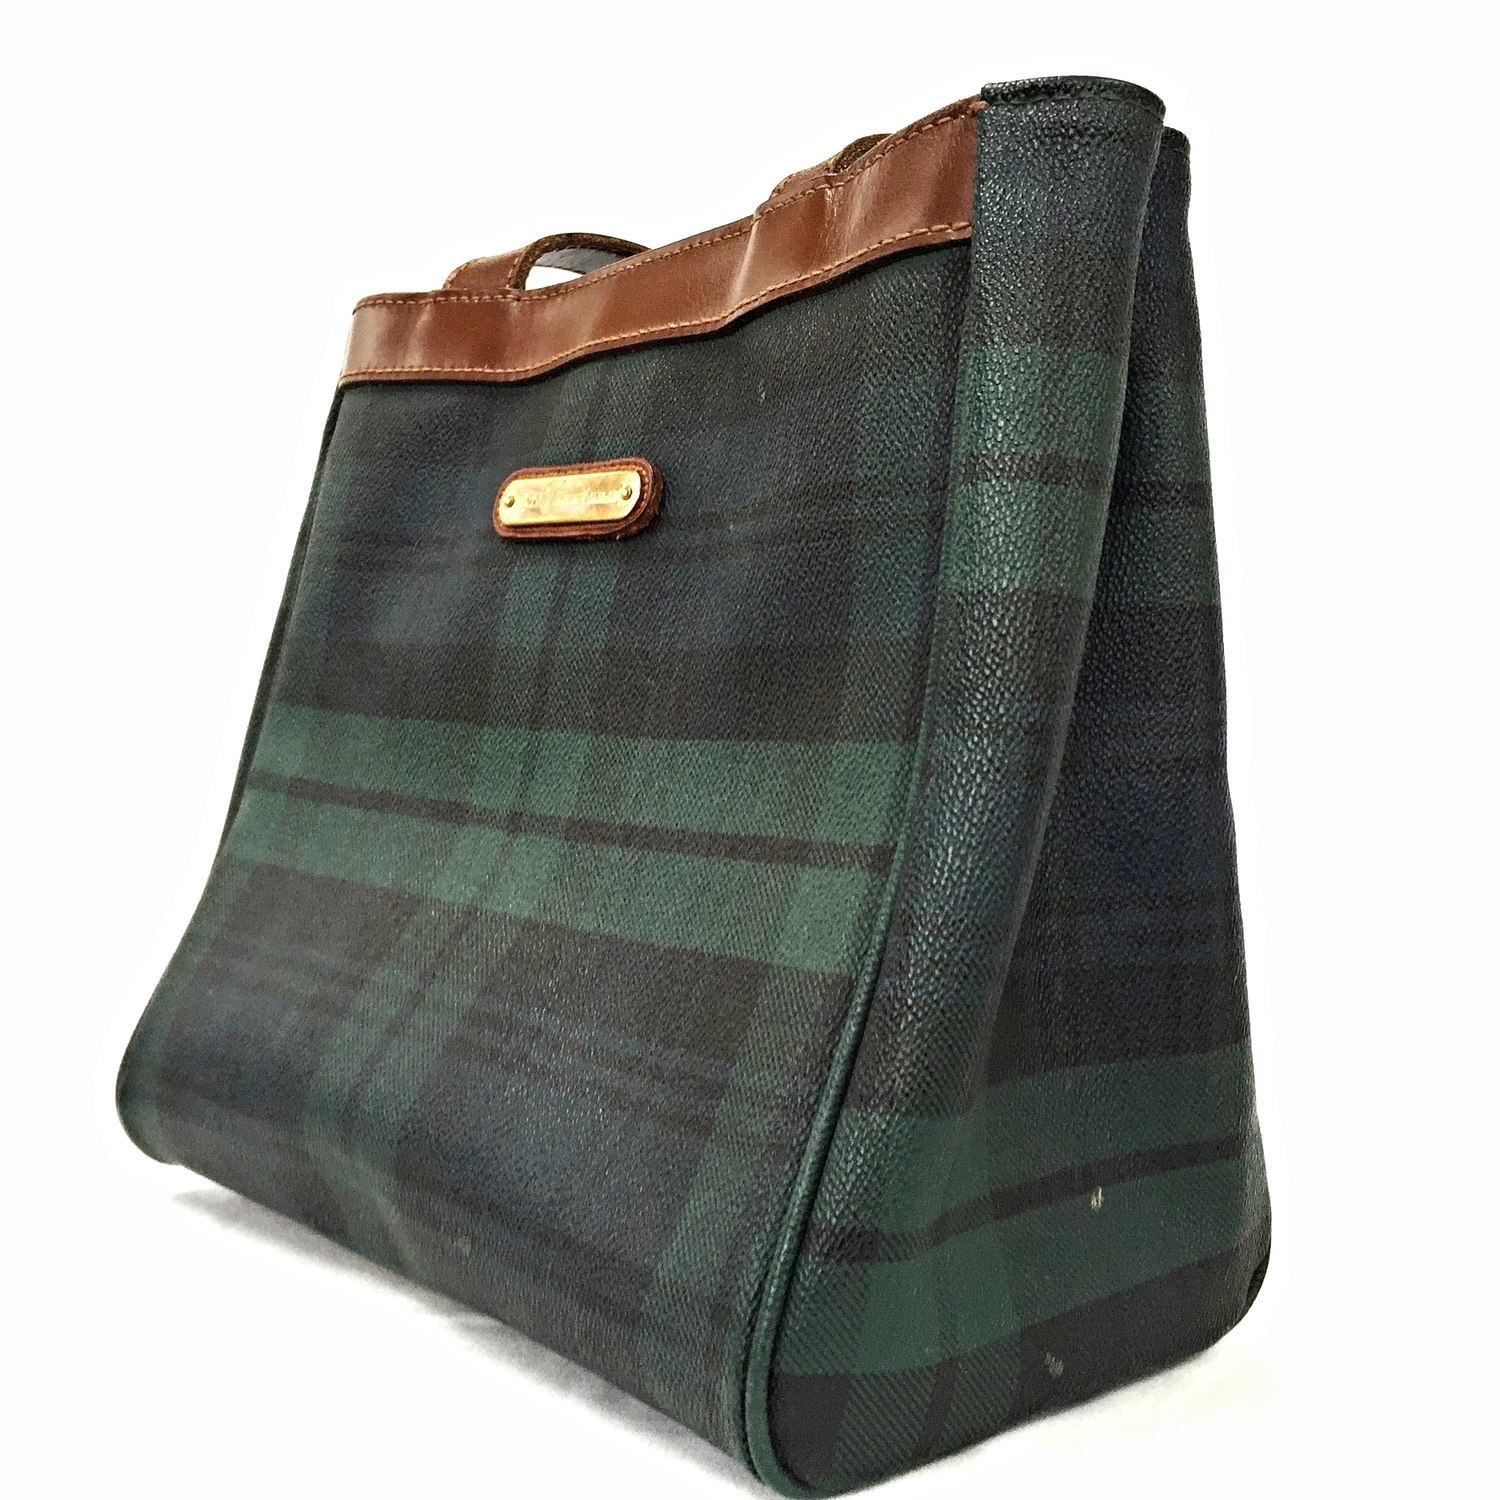 140ed4c64129 Vintage 1980 s POLO Ralph Lauren Blue and Green Plaid Tote Bag — Enamored  By Nicole